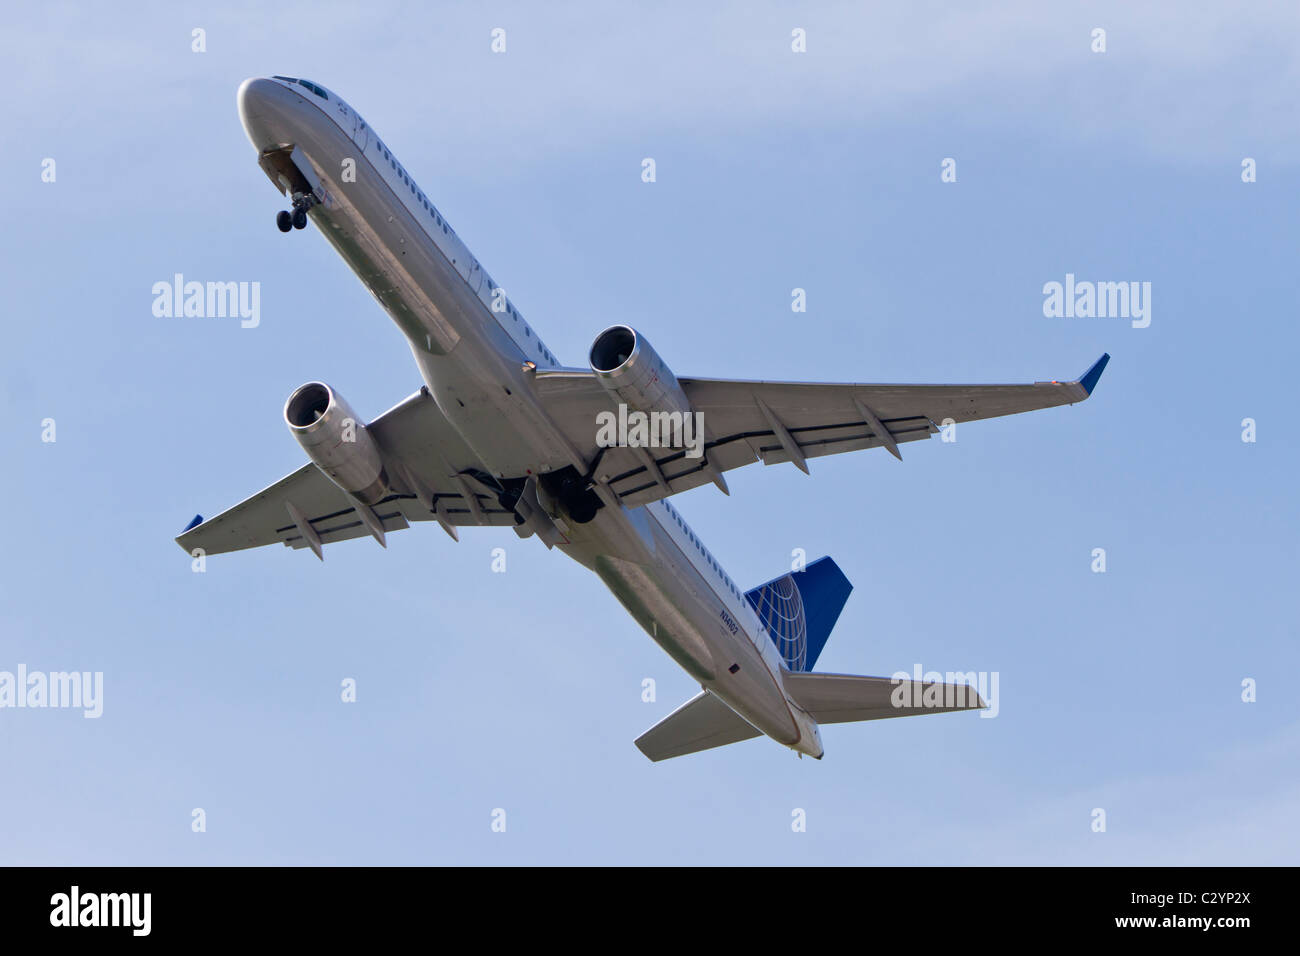 Boeing 757-224 belonging to United Airlines (Continental Airlines) reg N14102, taking off from Manchester Airport, - Stock Image